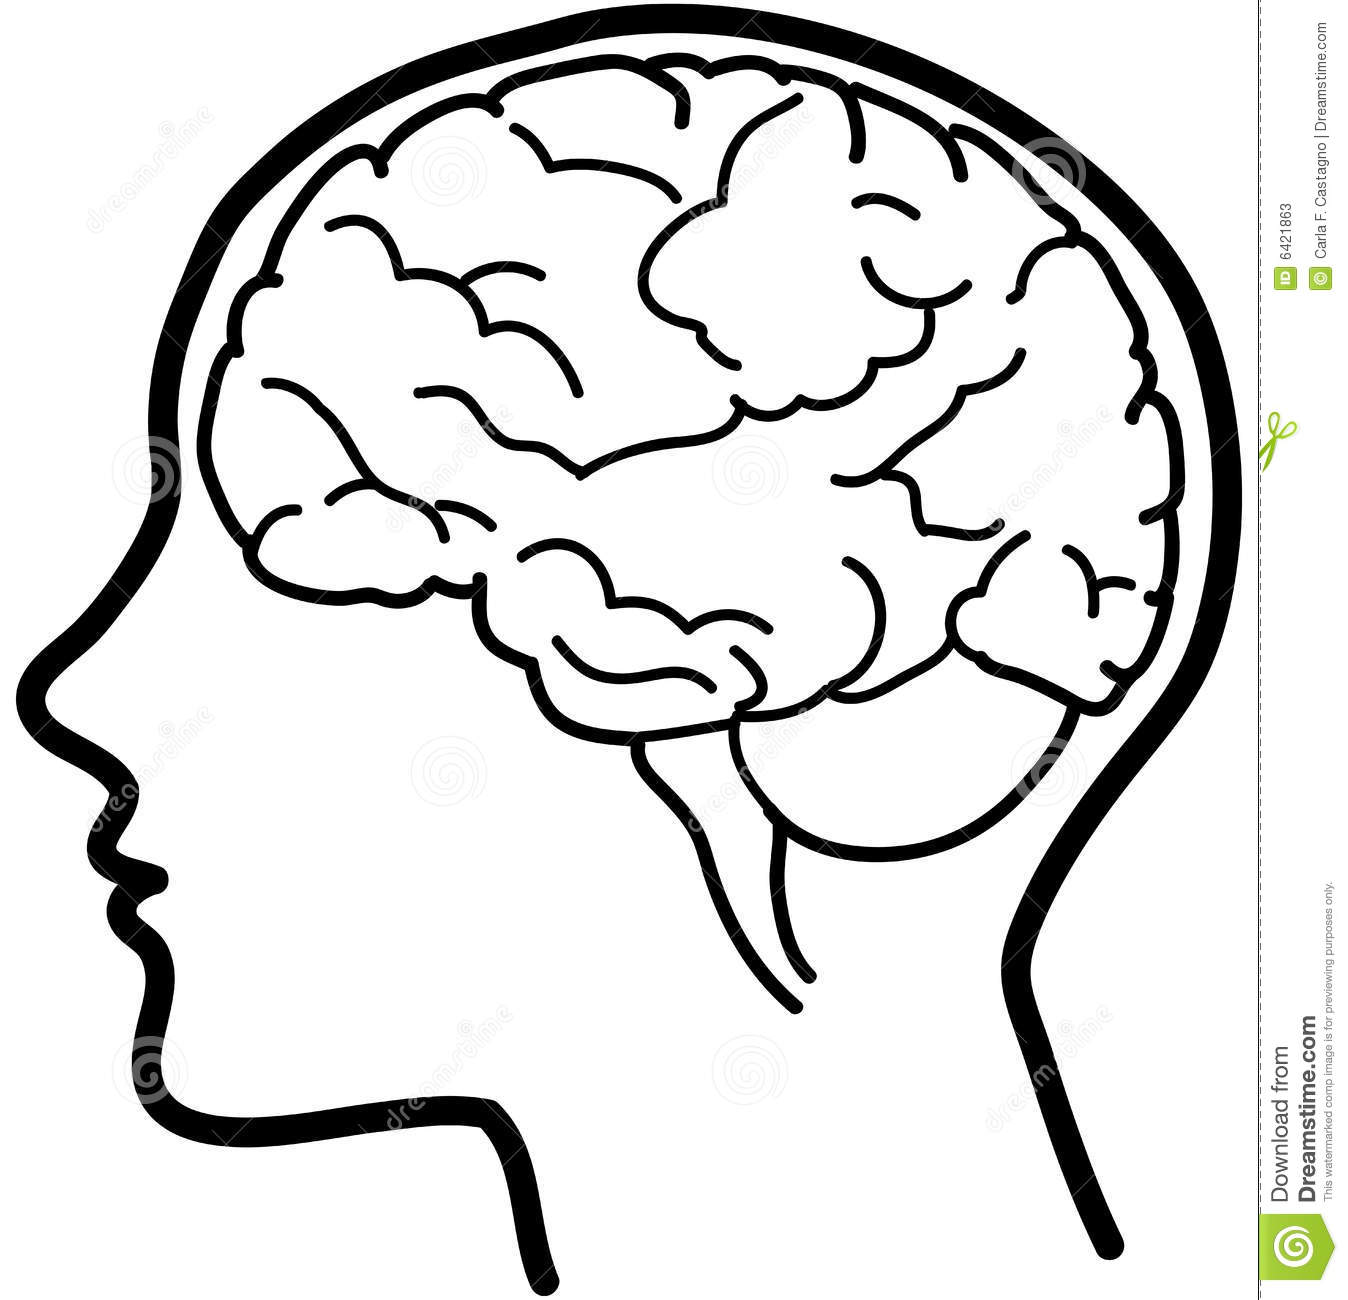 Outline drawing at getdrawings. Brain clipart